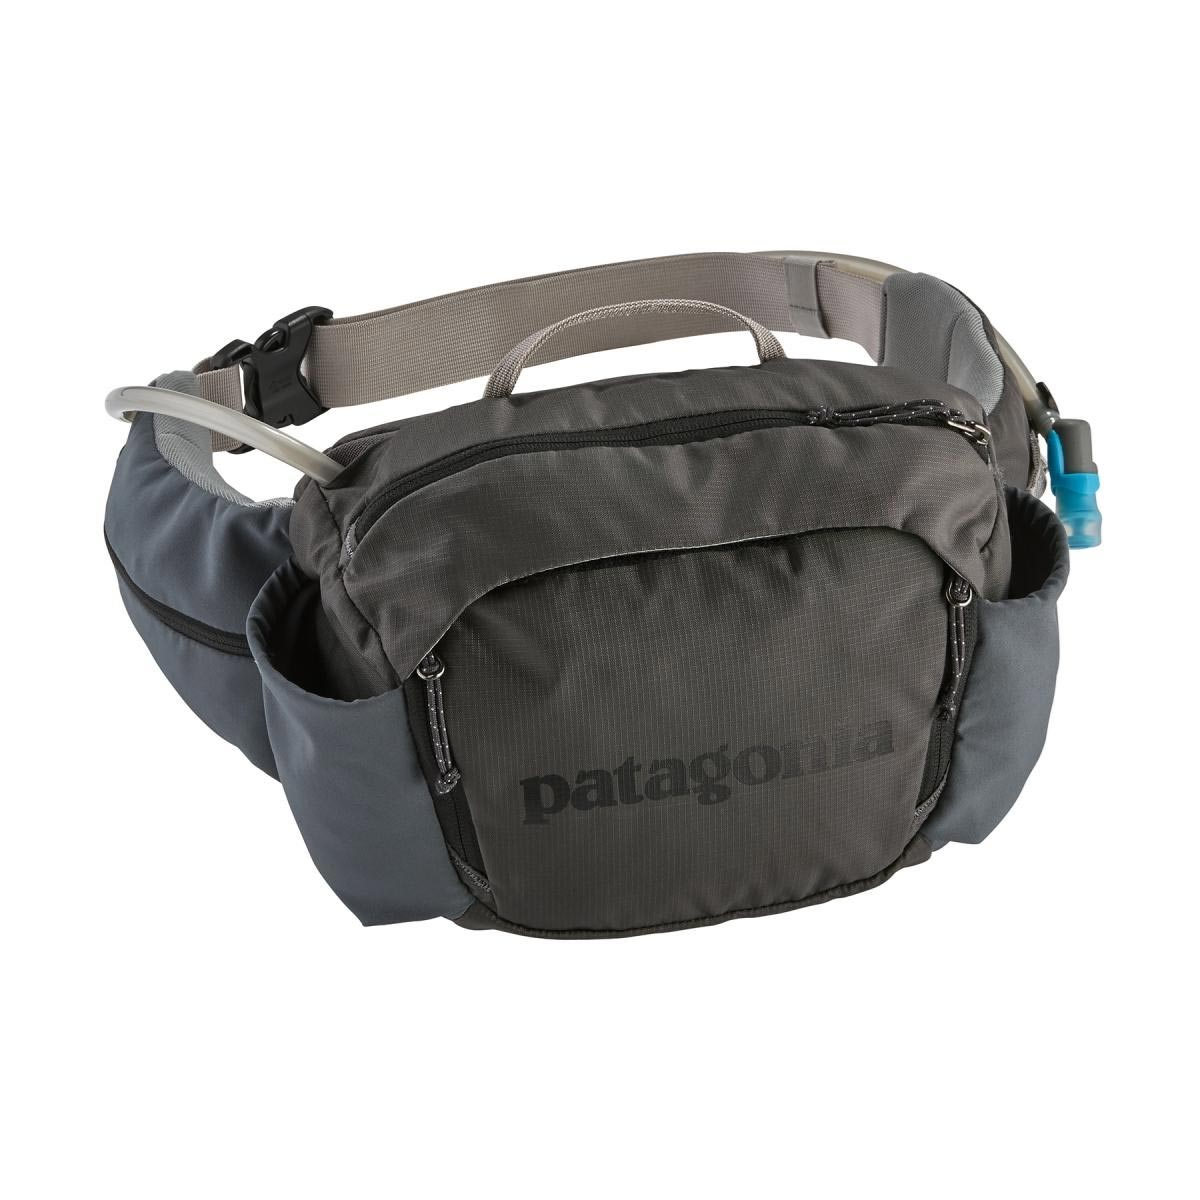 PATAGONIA NINE TRAILS HOFTEVESKE 8L – FORGE GREY